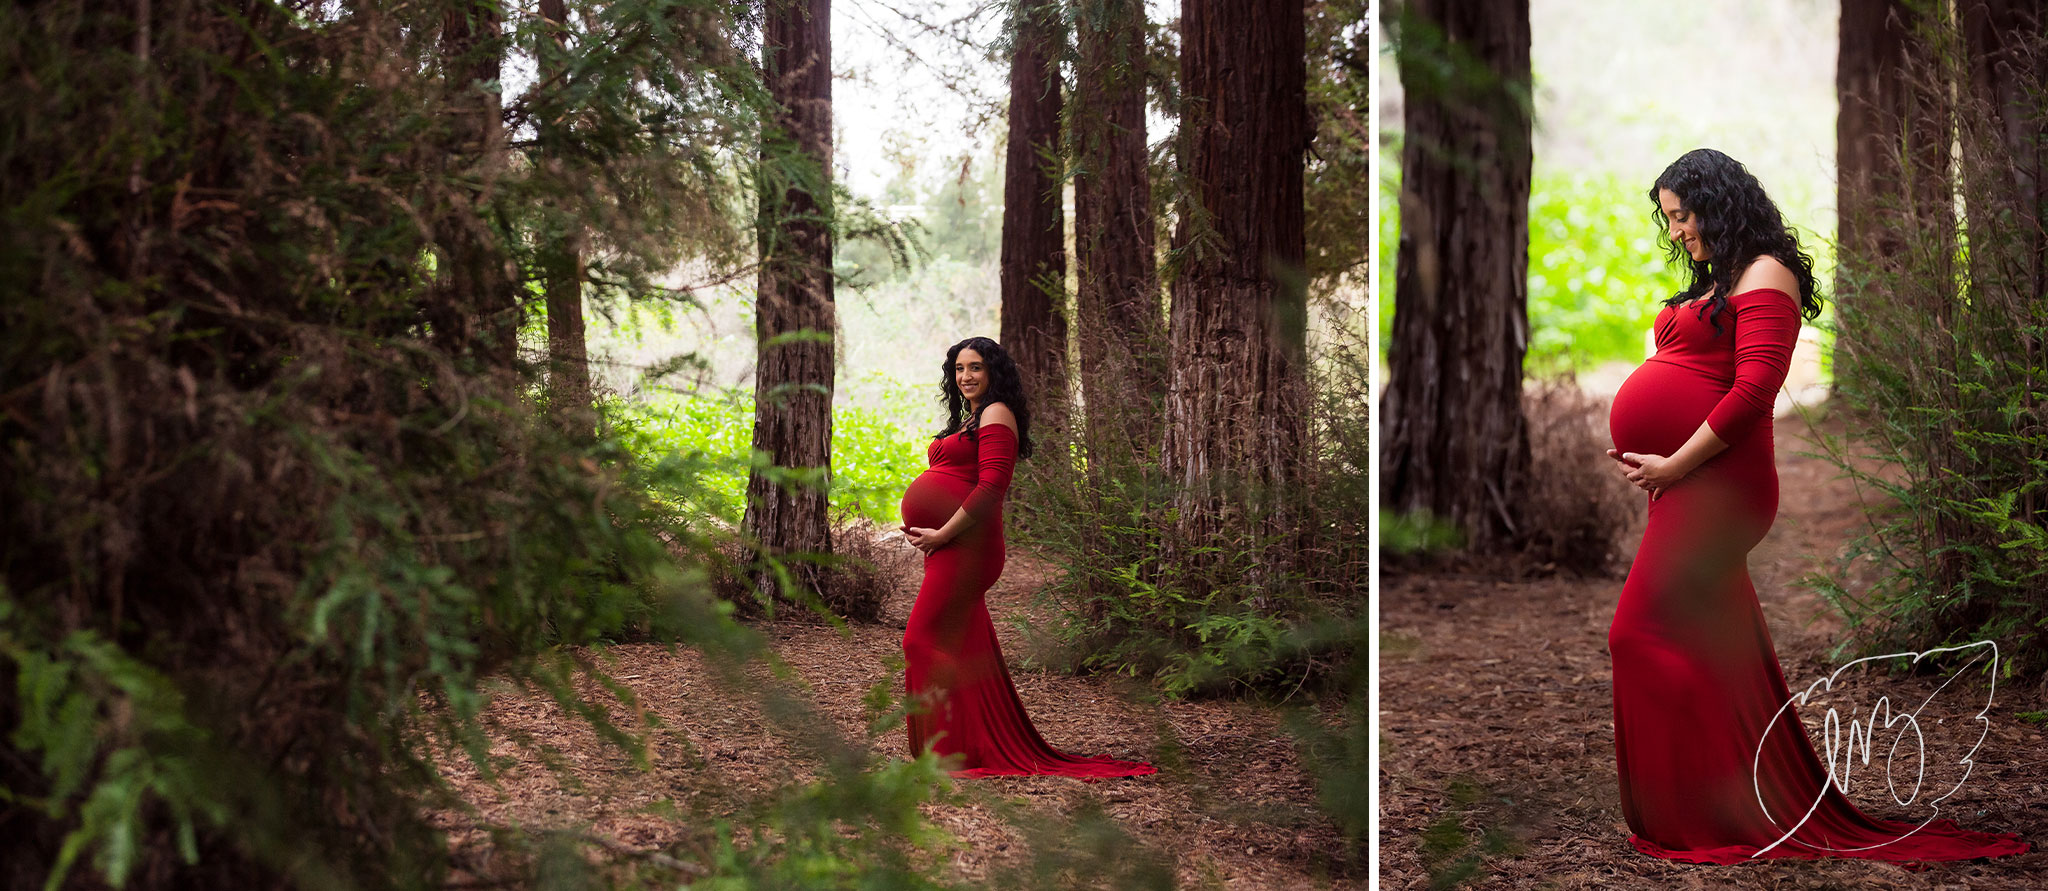 California_Inland_Empire_Maternity_Photographer_04.jpg